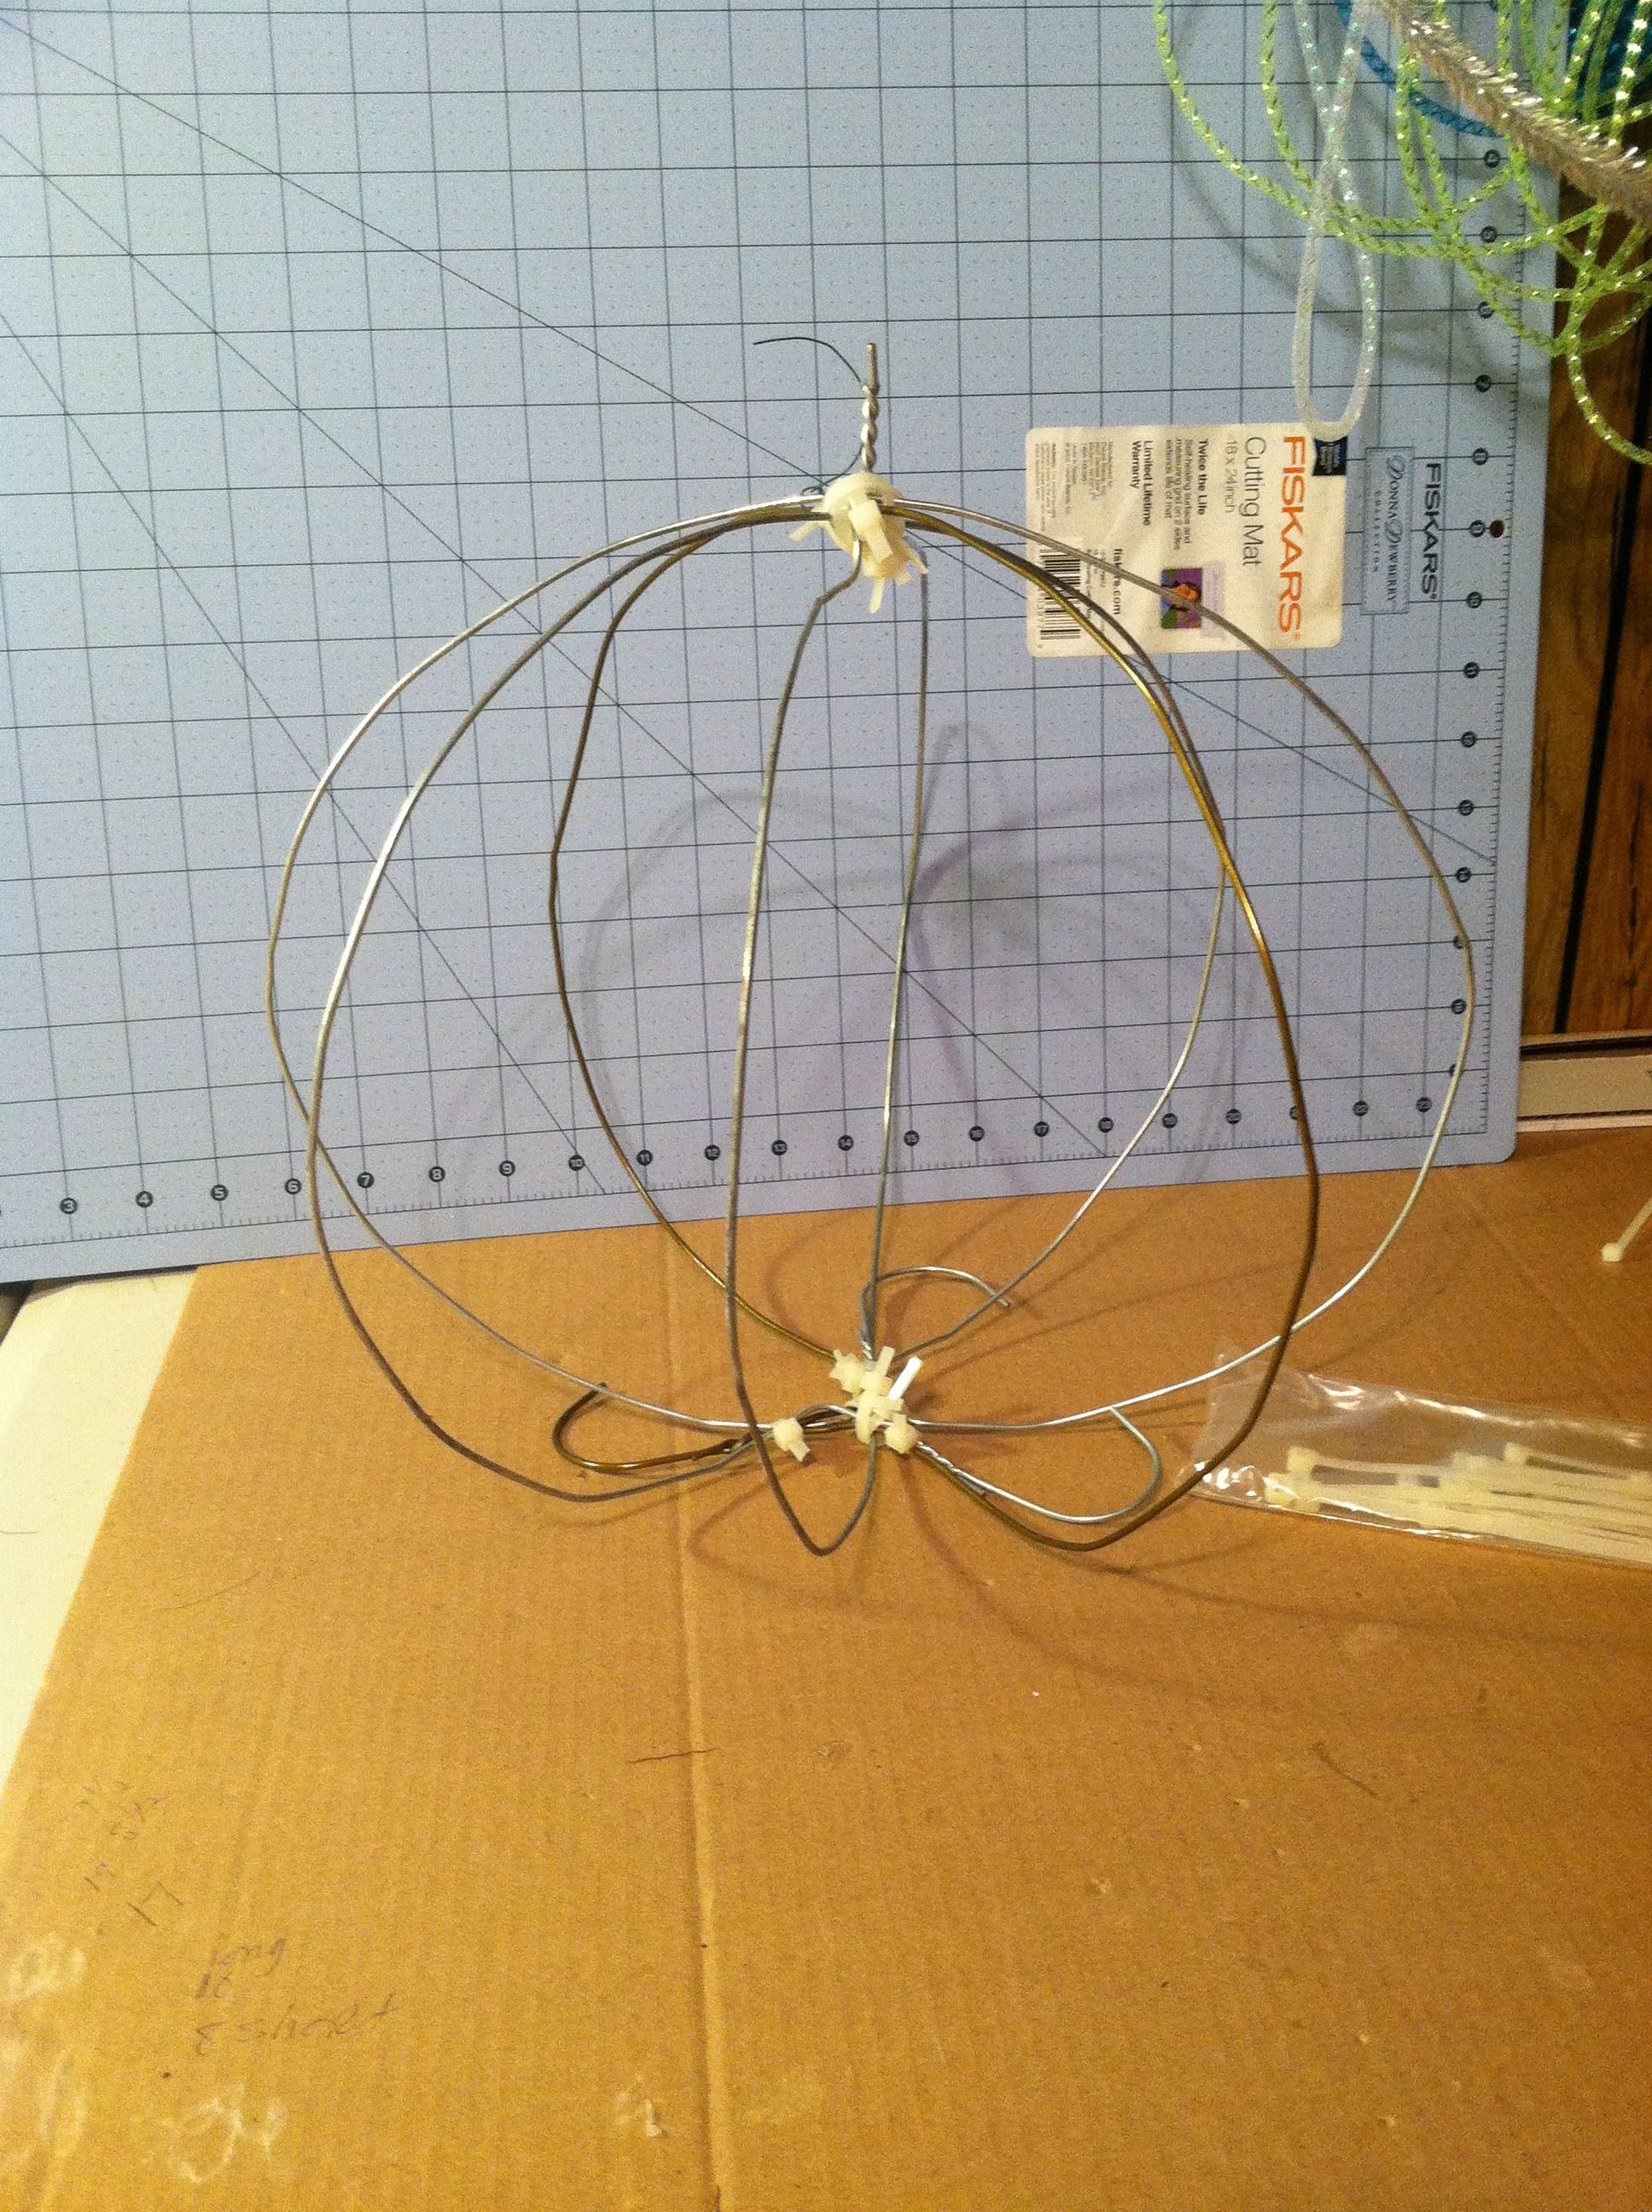 Made Work Ball For Deco Mesh Pumpkin Using Wire Hangers Zip Ties Wiring And Chenille Stems